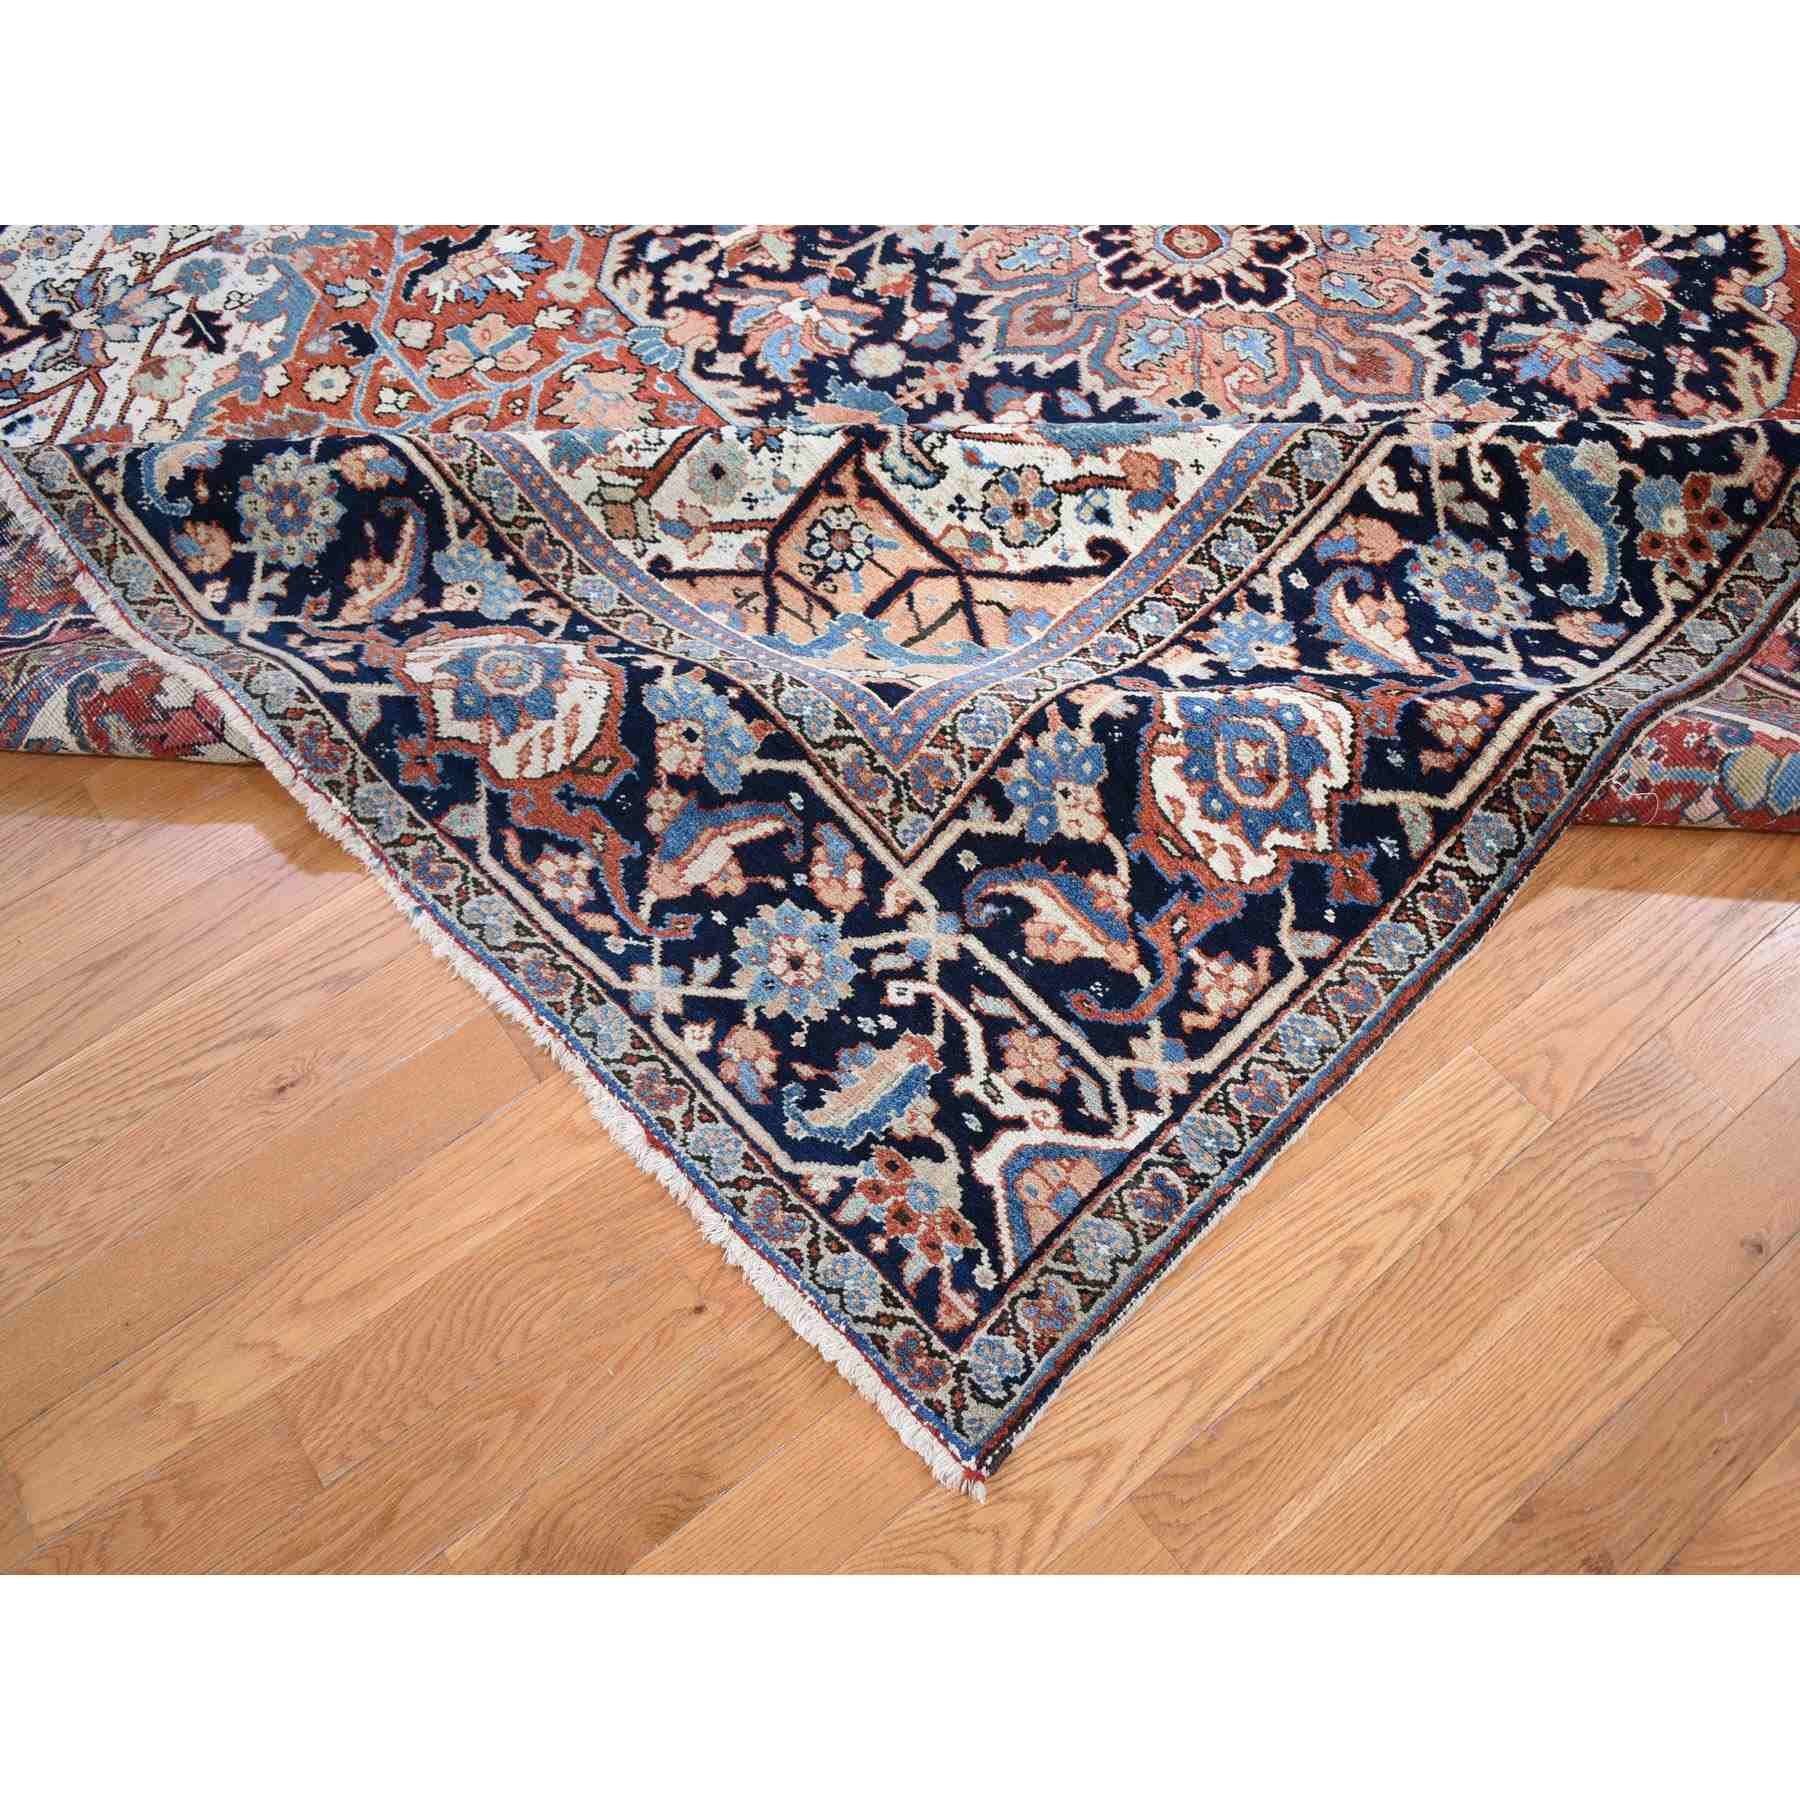 Antique-Hand-Knotted-Rug-296440